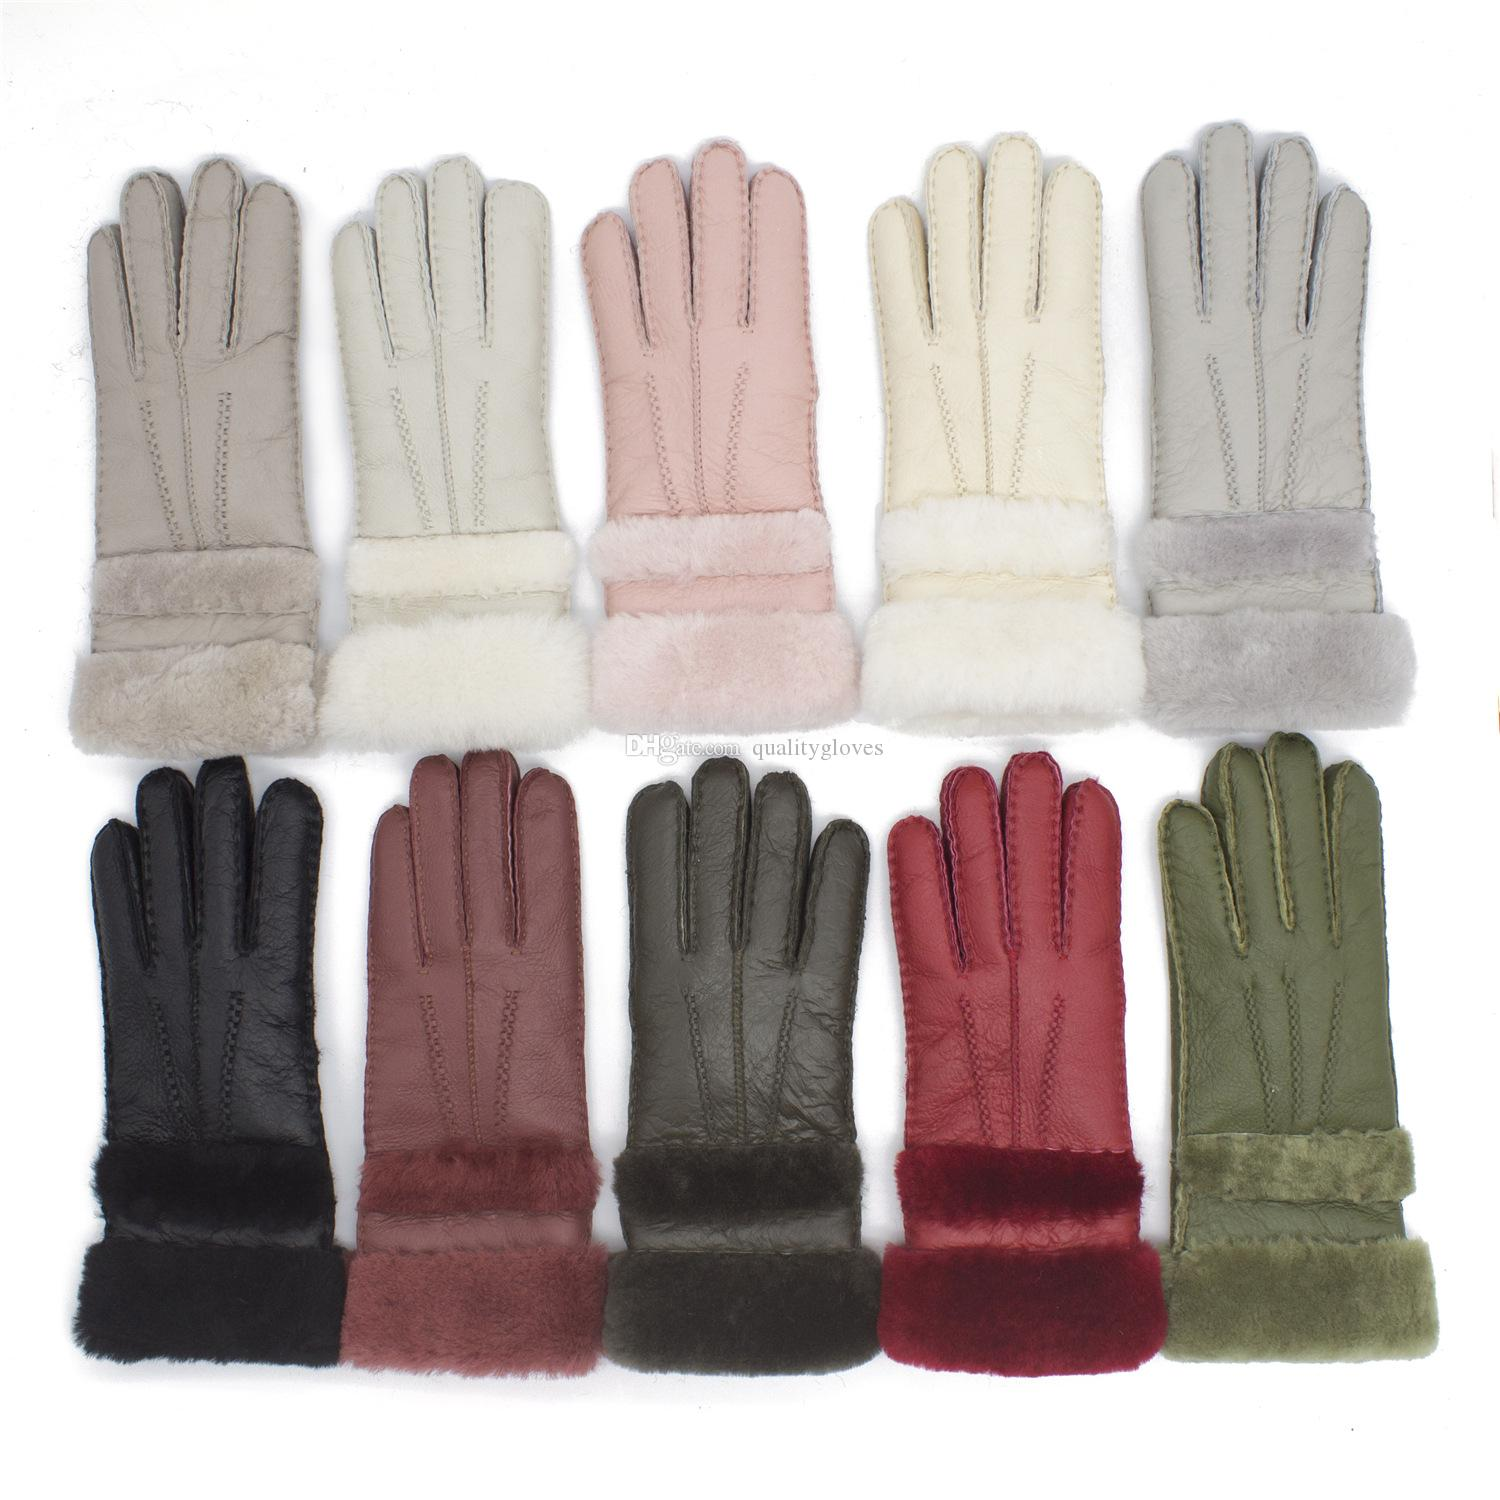 2018 New Women High Quality Leather Gloves Women Wool Gloves Free Shipping Quality Assurance - lengthened